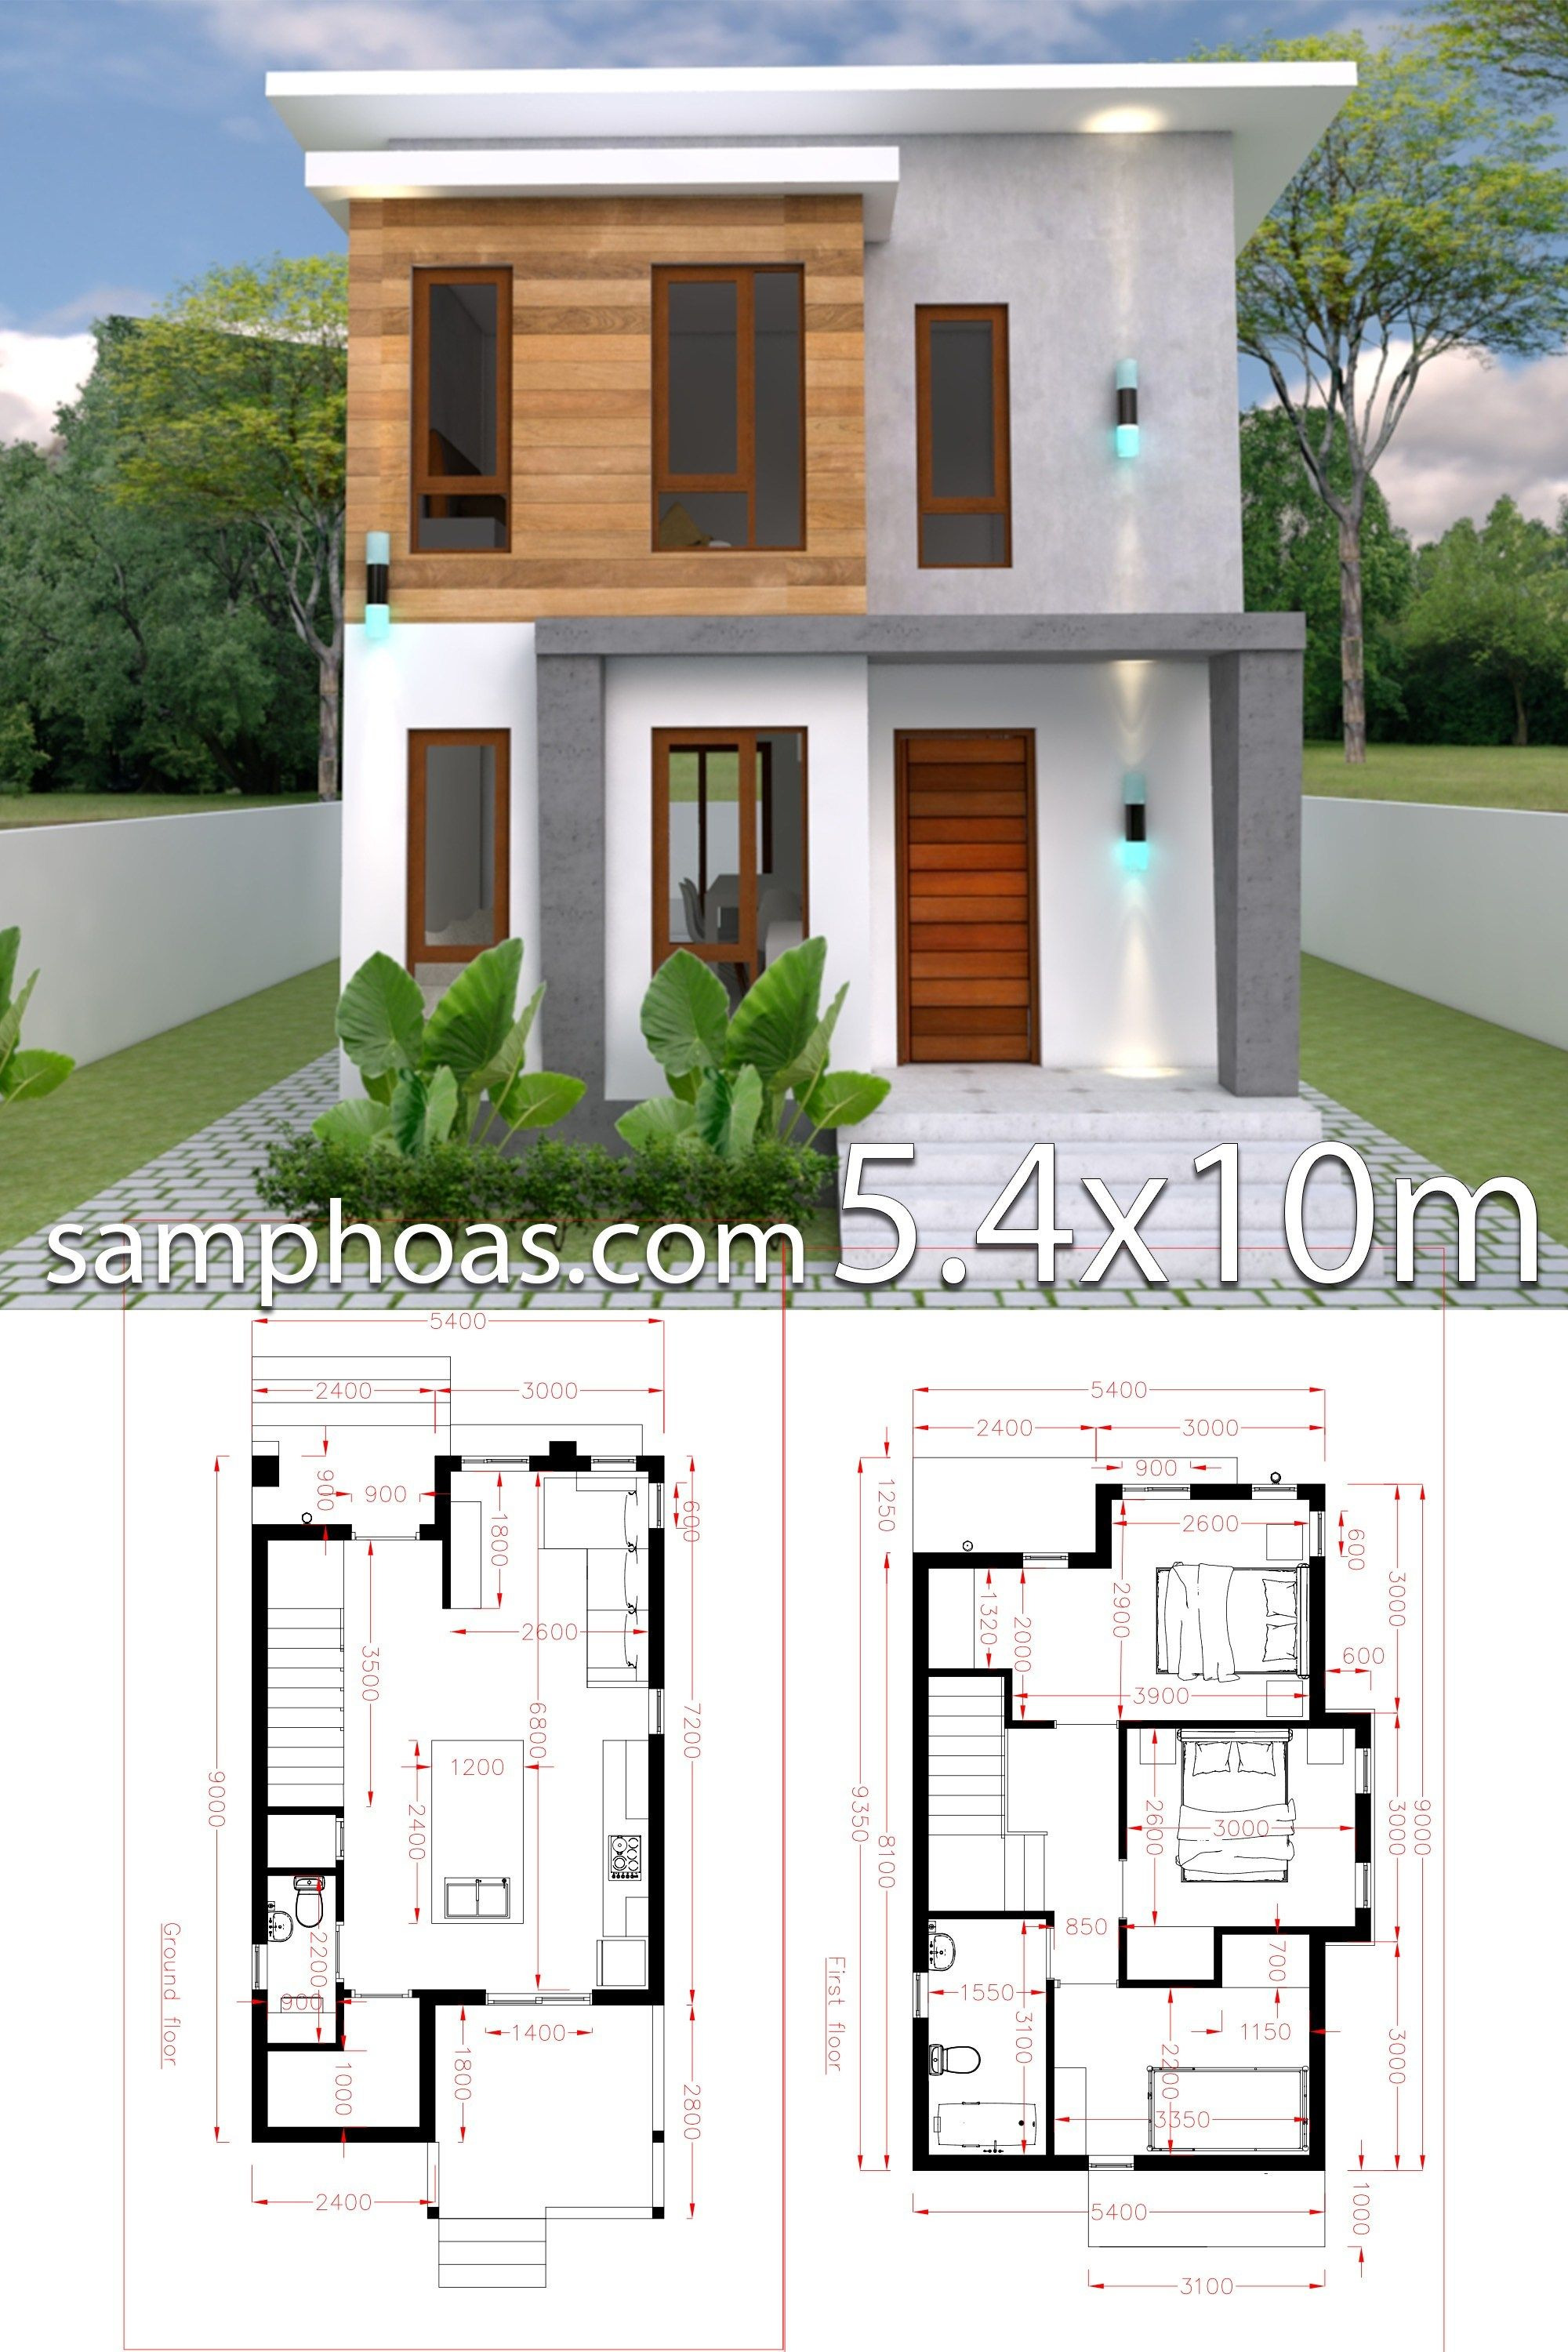 Simple House Models Pictures Awesome Small Home Design Plan 5 4x10m with 3 Bedroom